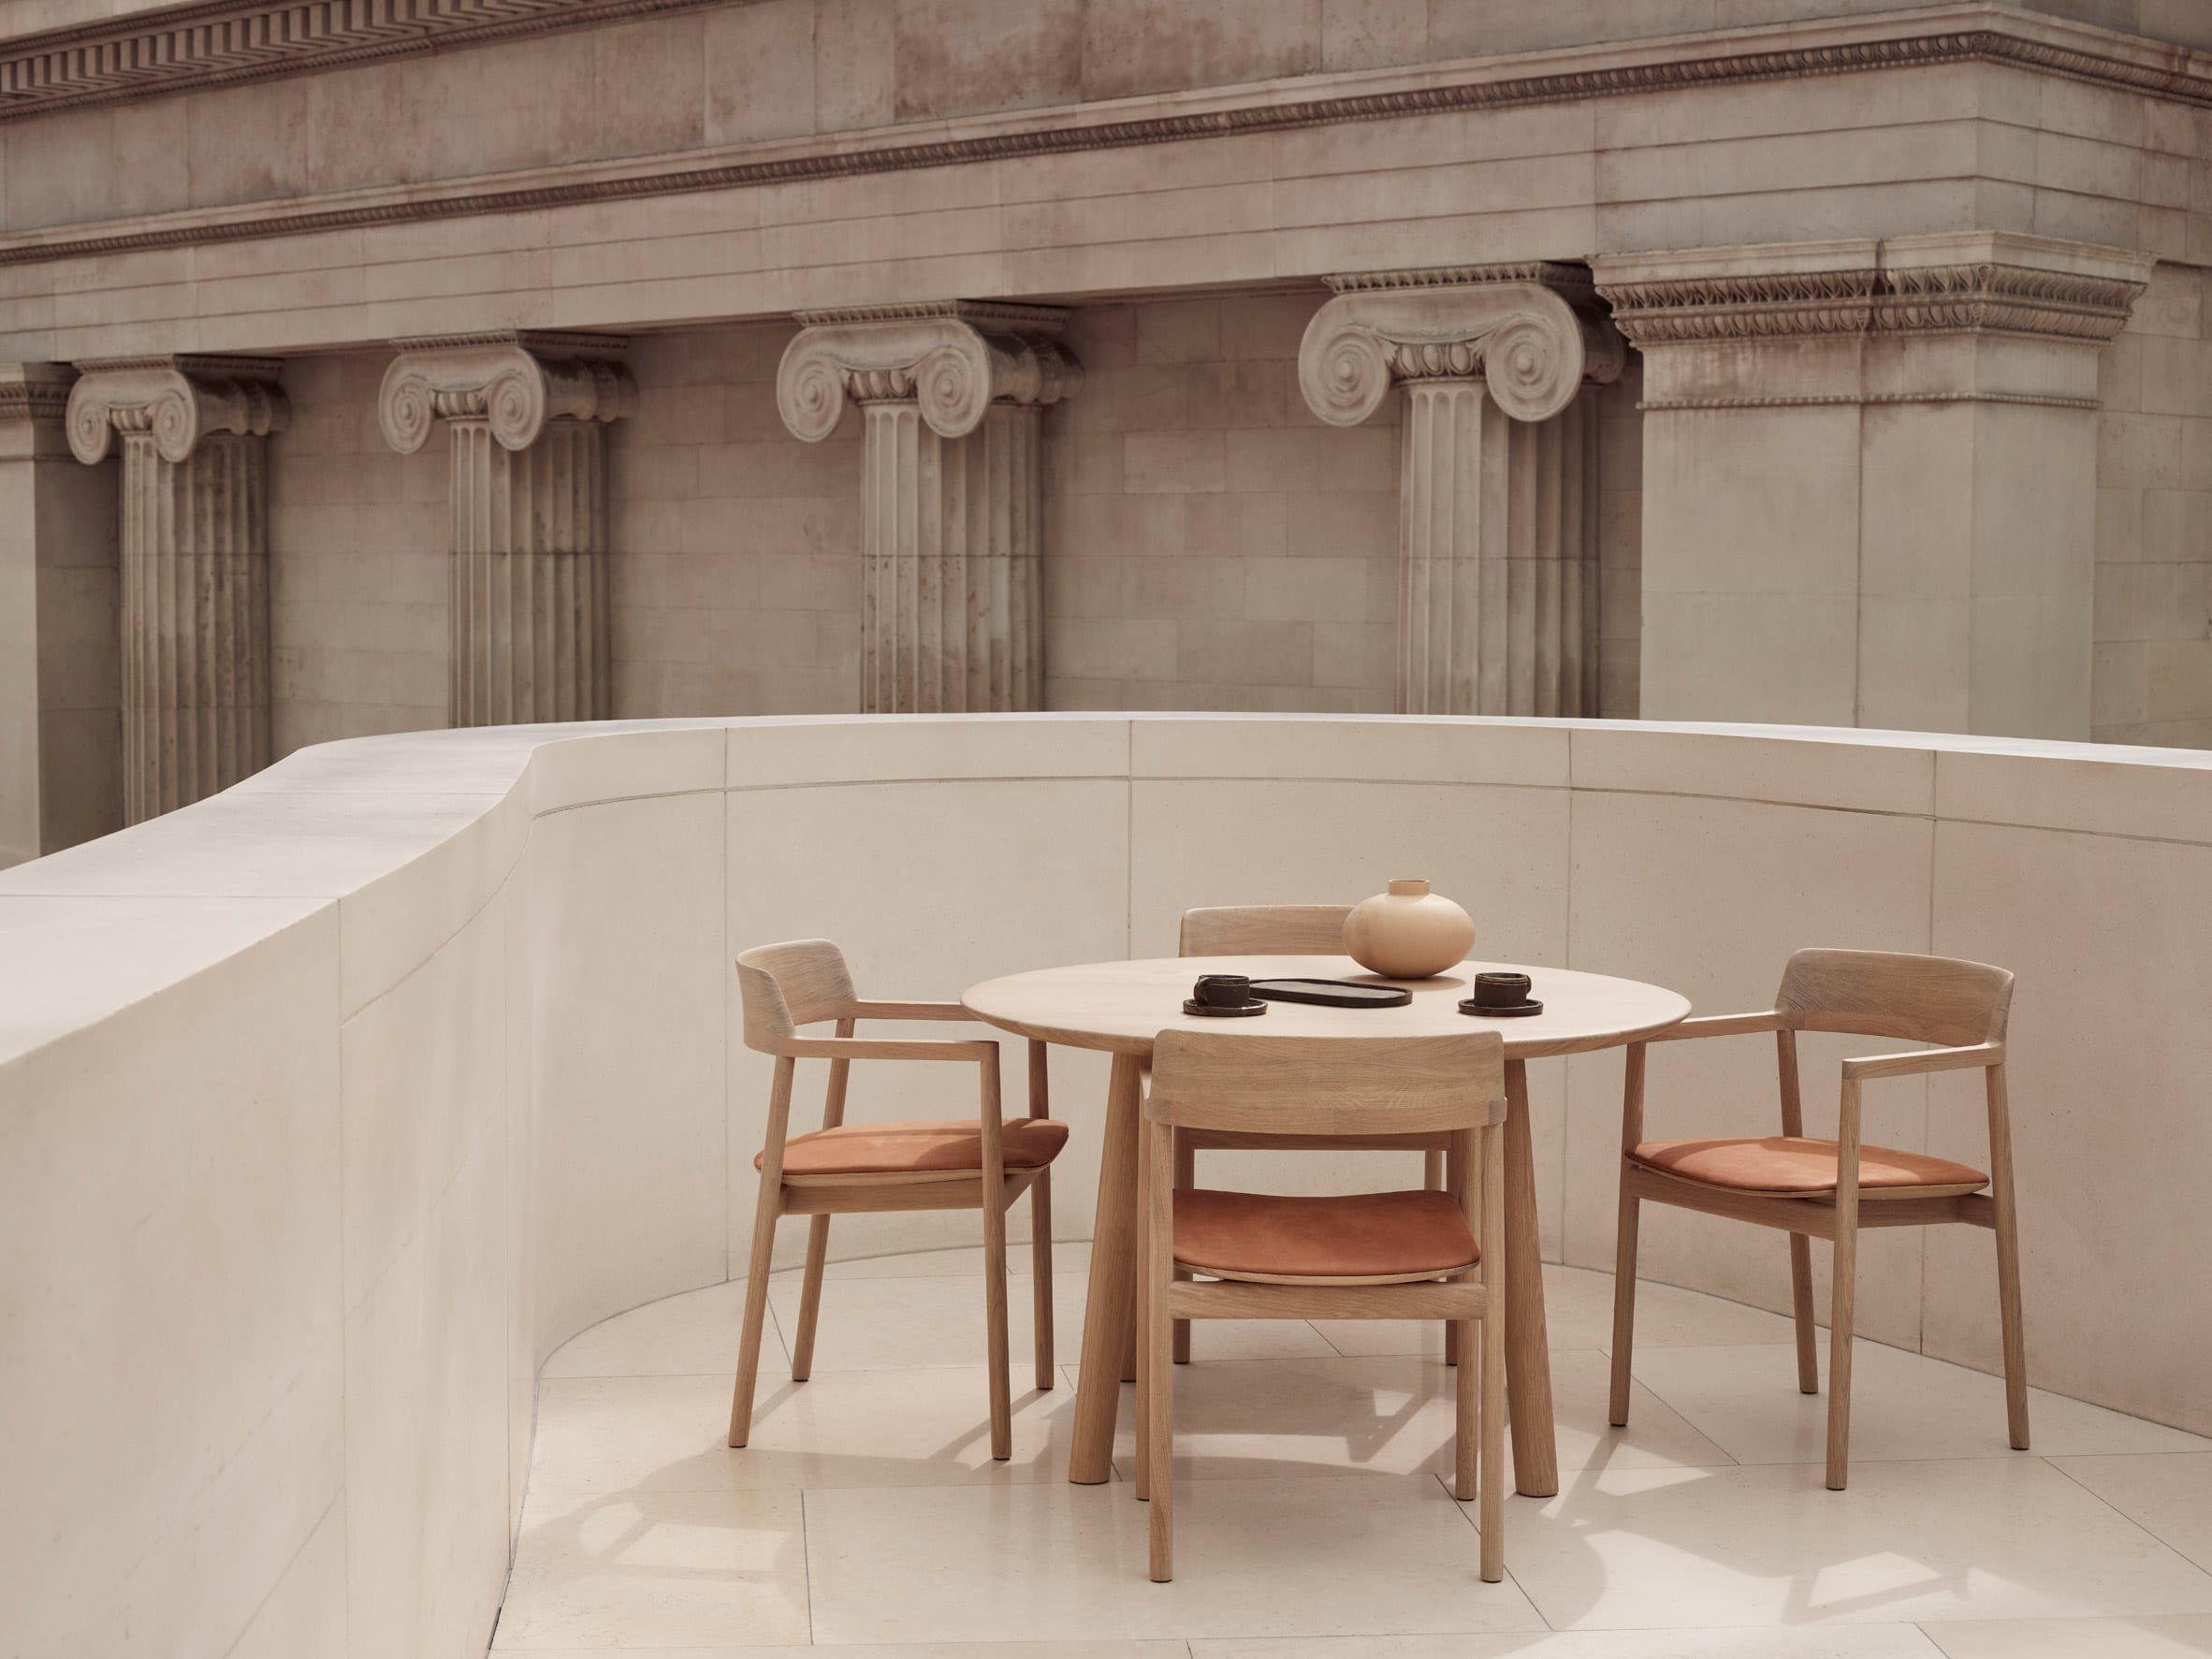 The chairs are place around a circular table